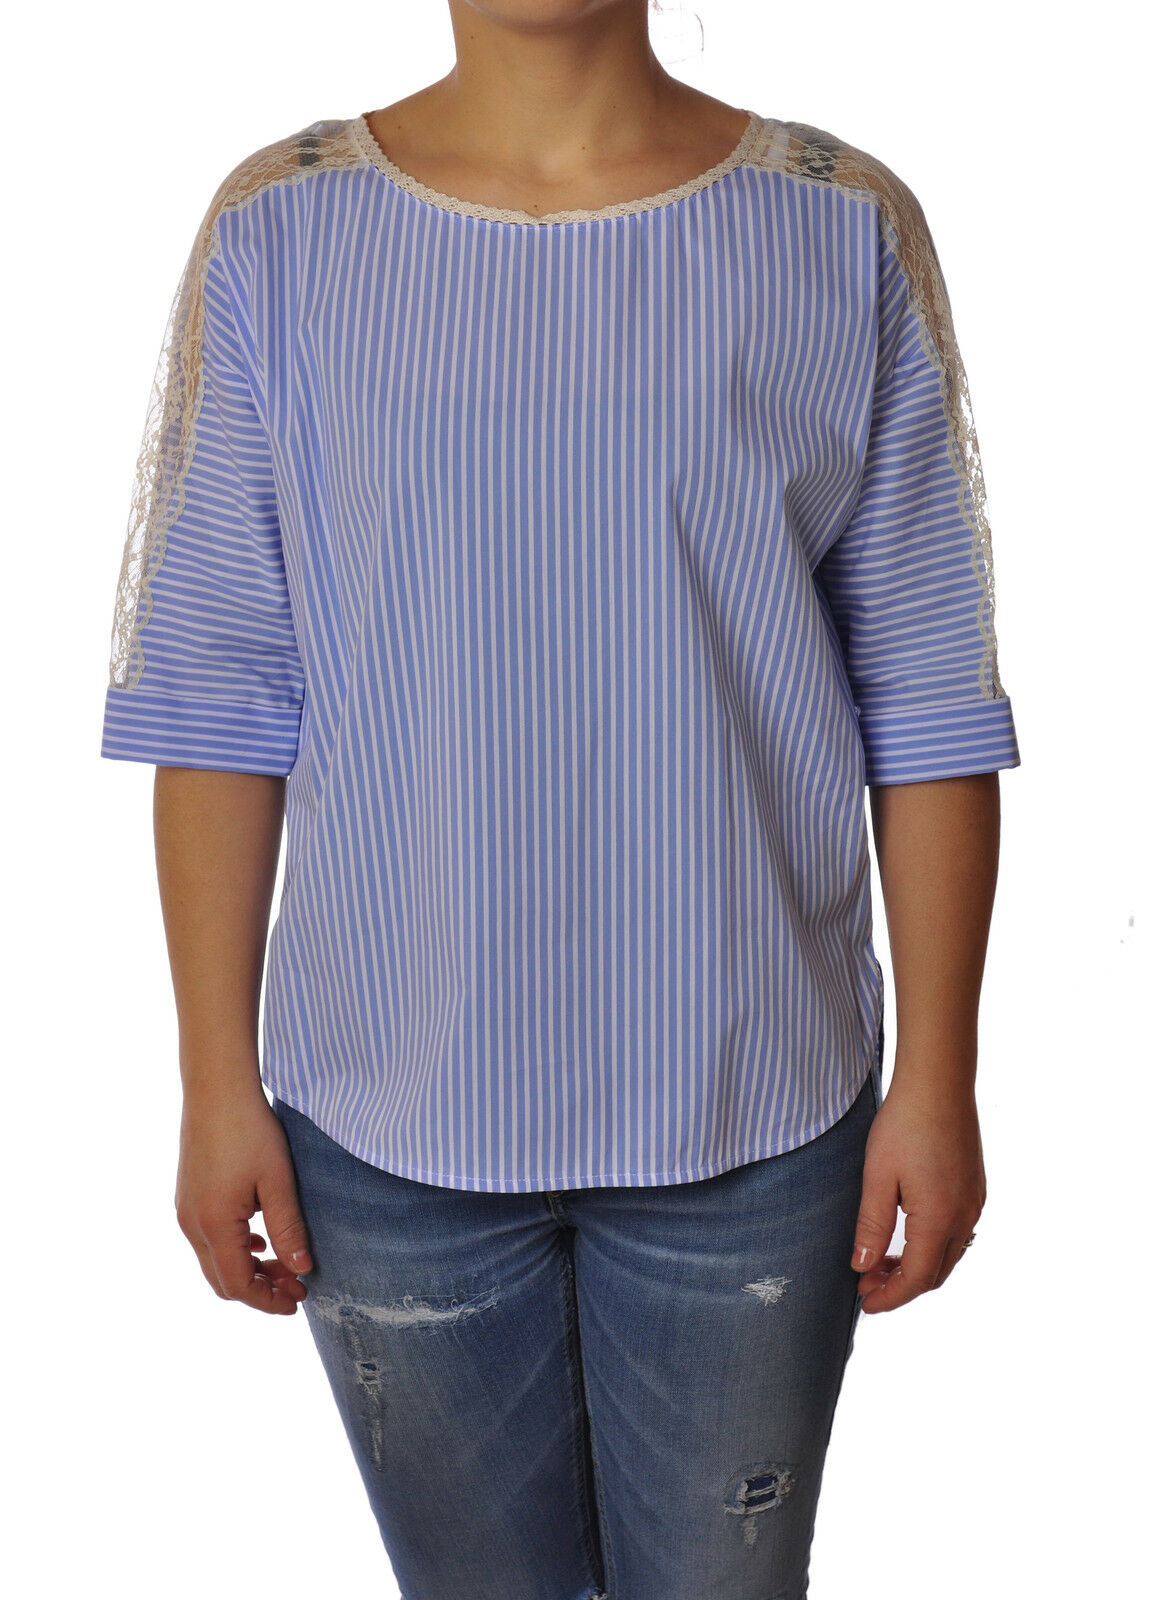 Twin Set - Shirts-Shirt - Woman - Blau - 3057406G184232